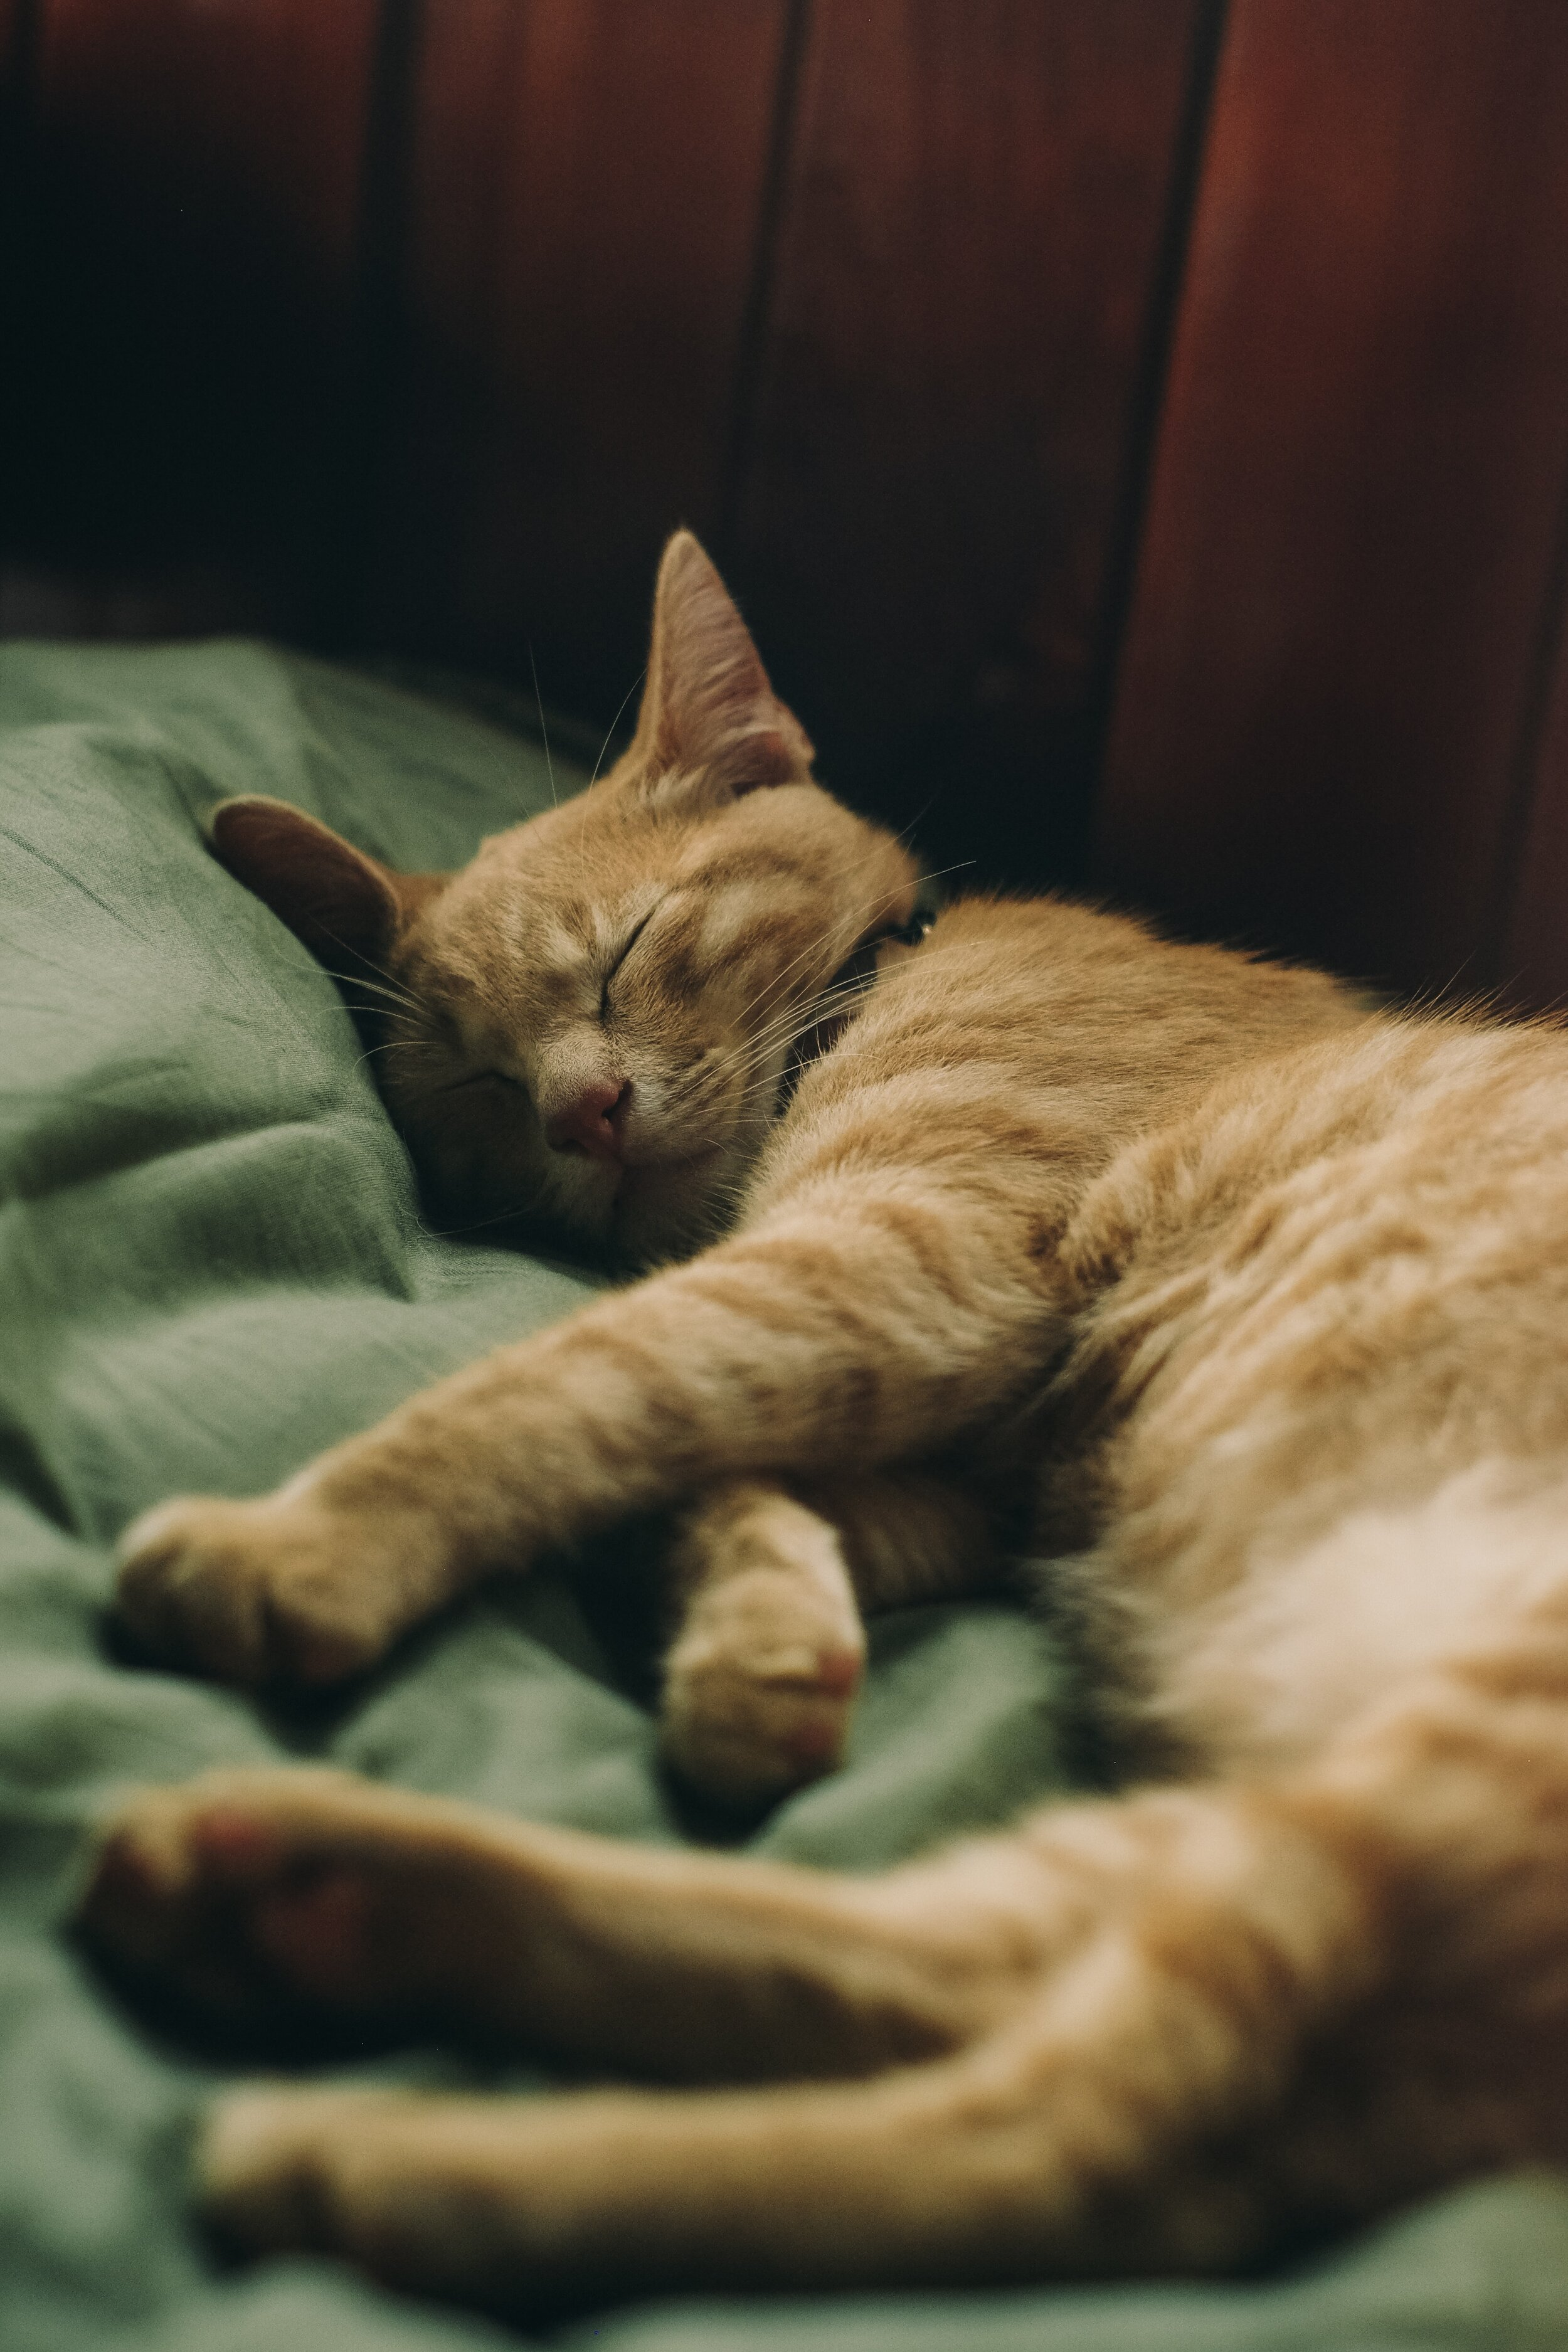 - It's also important to monitor your cat after being diagnosed with FLUTD during treatment to ensure that the problem doesn't reoccur as cats are good at hiding their pain.